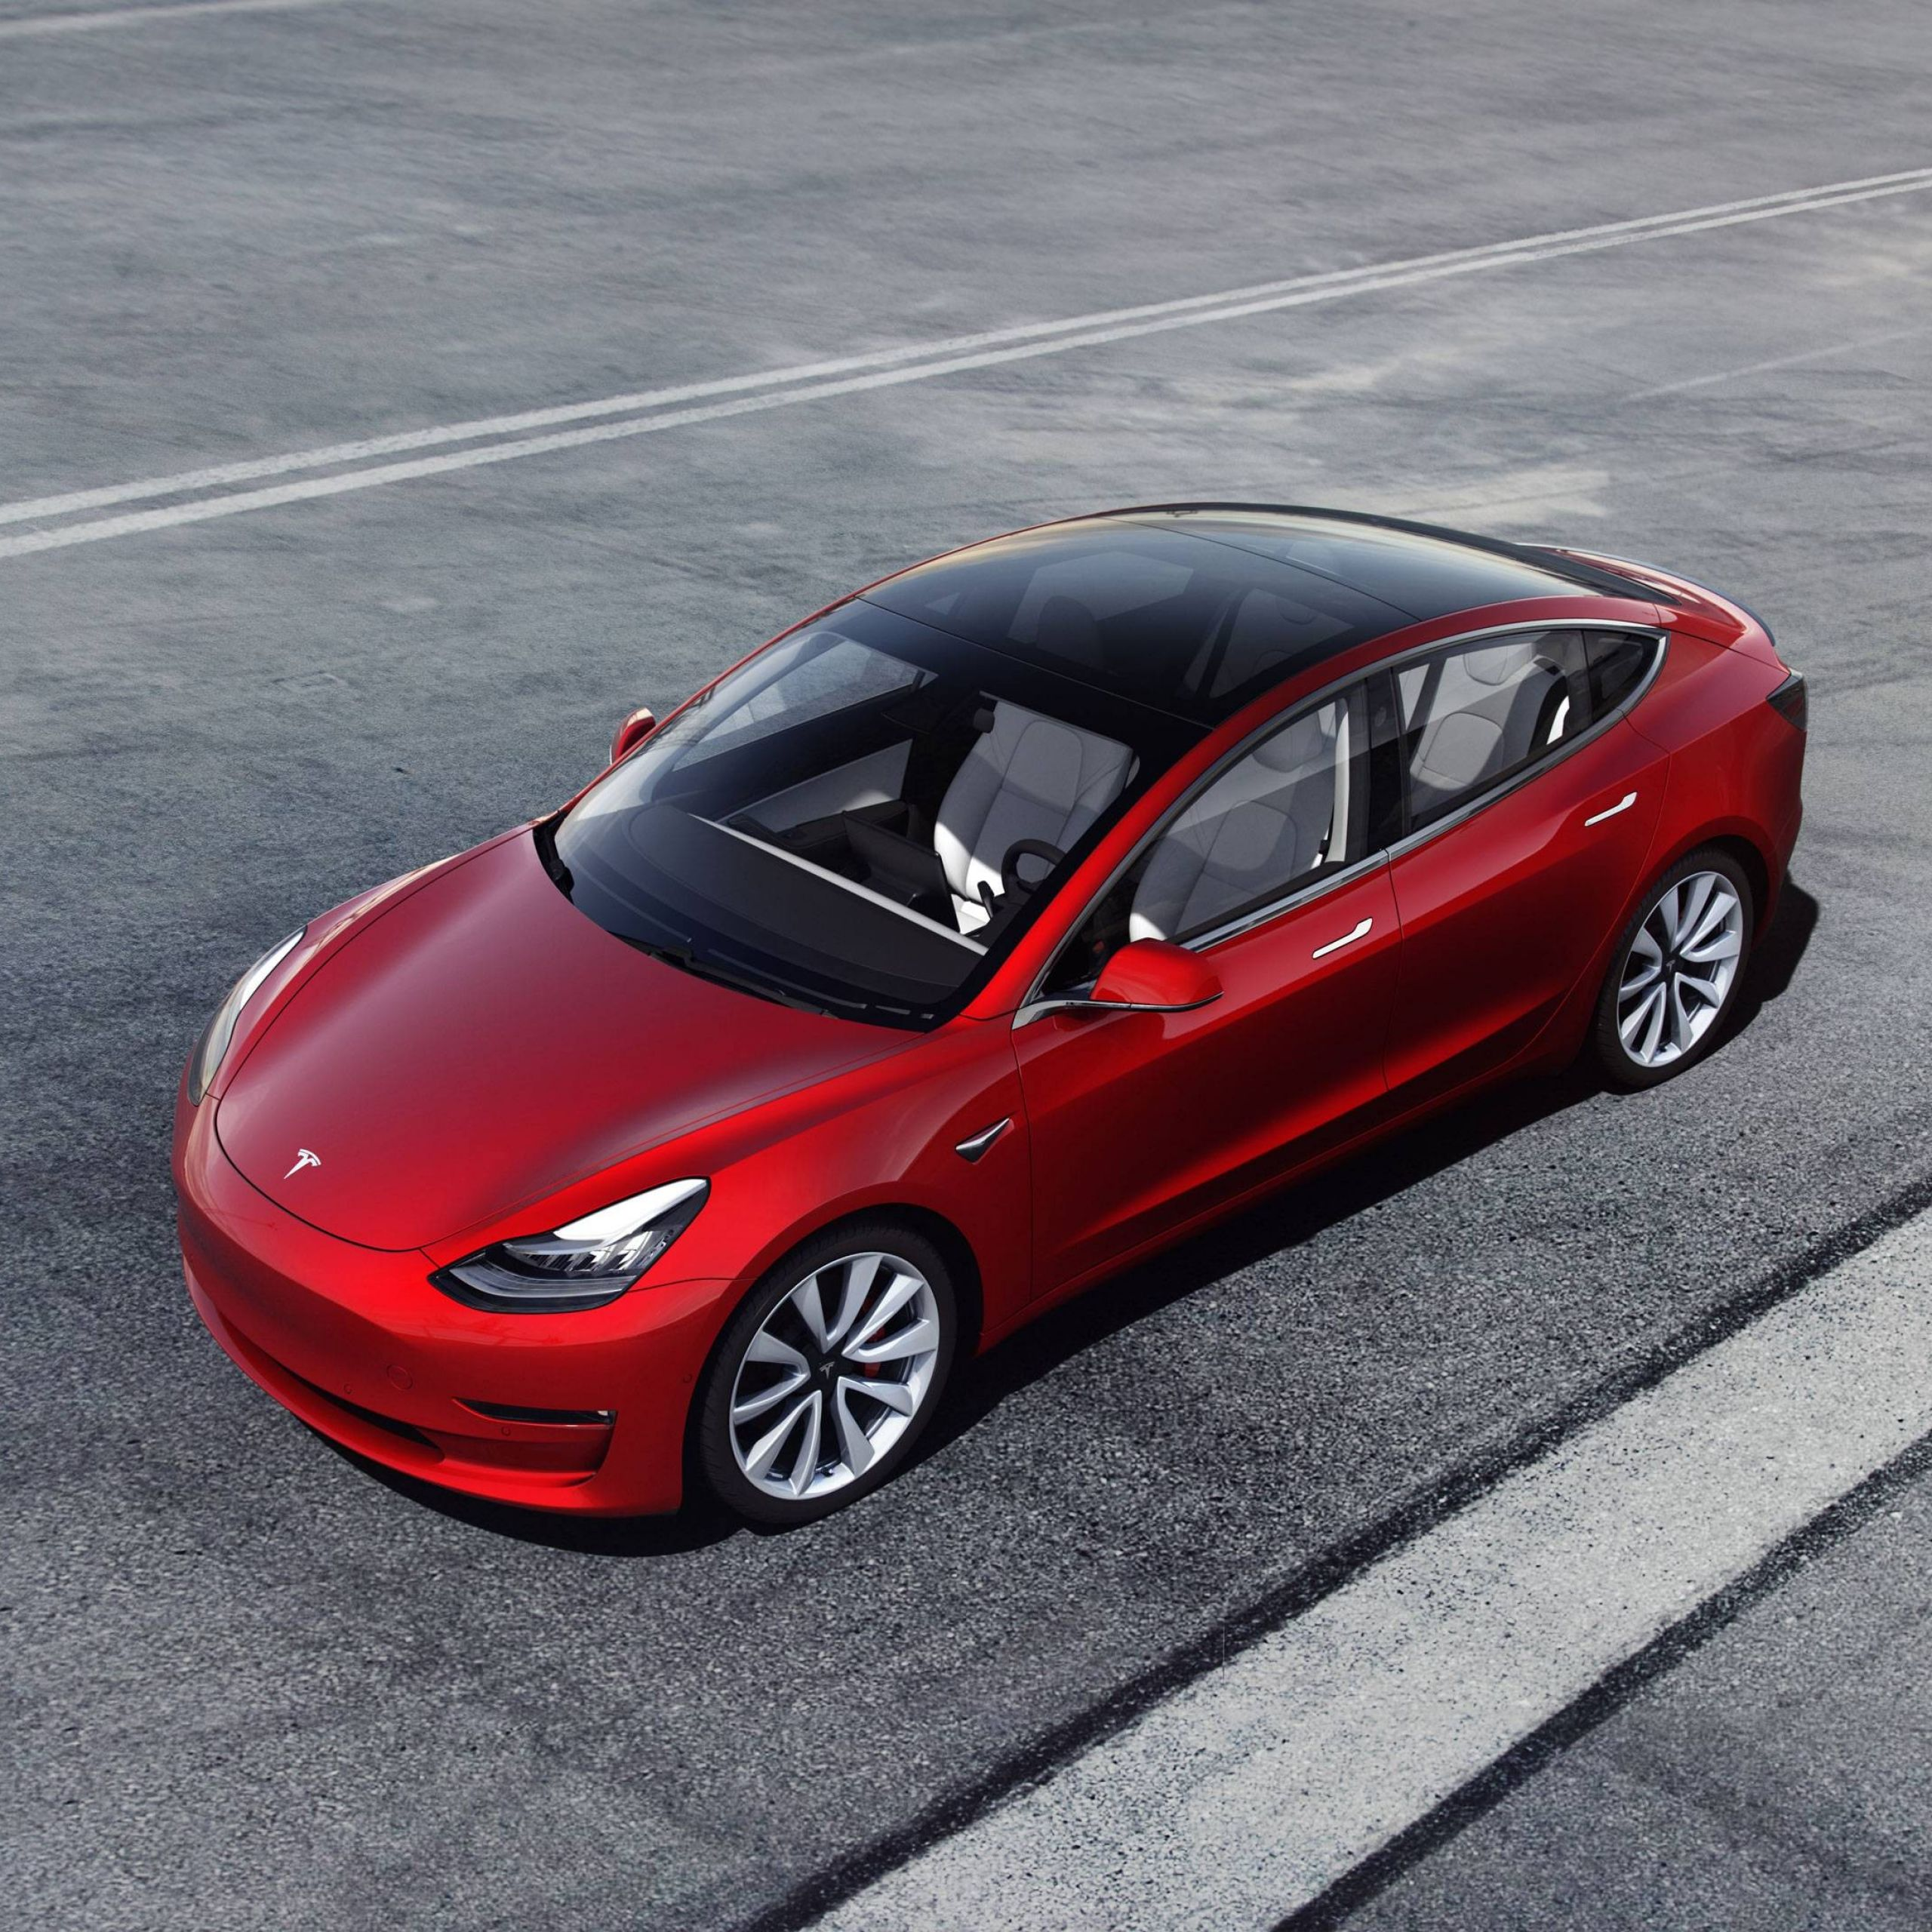 Tesla 1 Awesome Tesla Model 3 Review Worth the Wait but Not so Cheap after